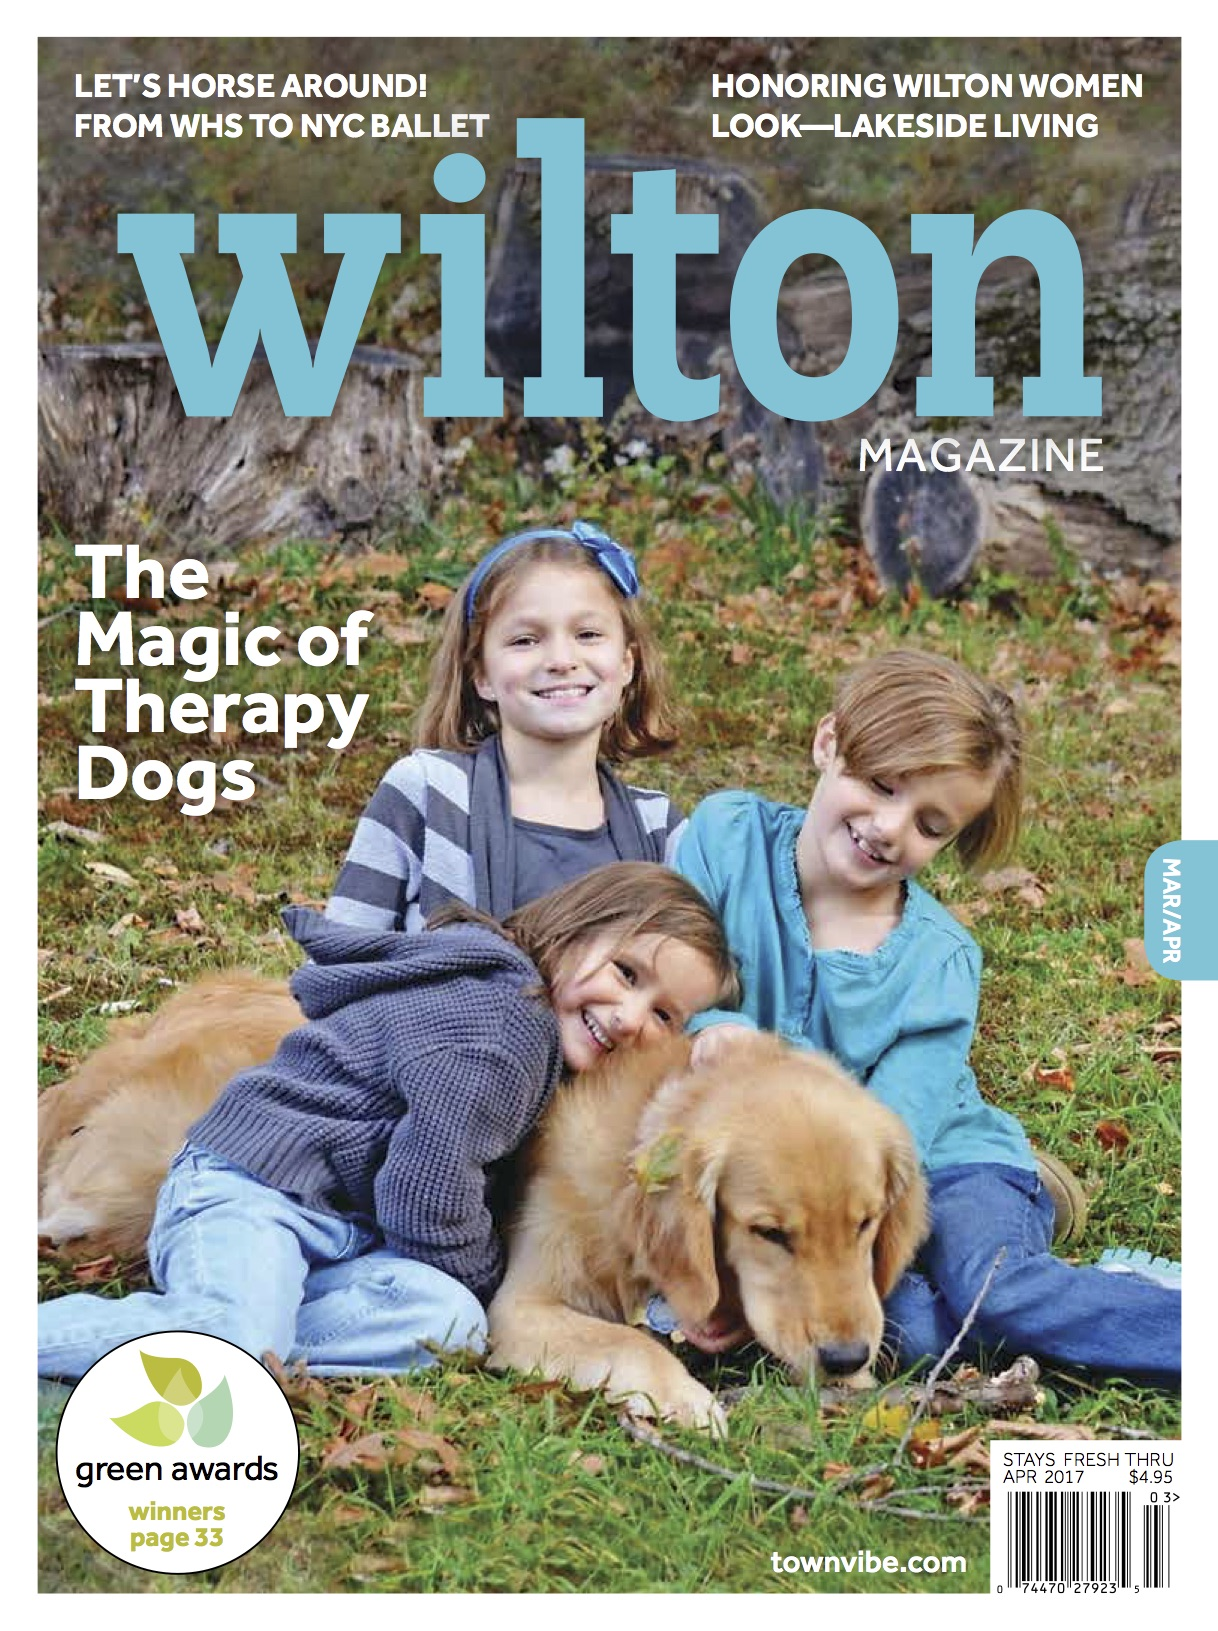 Wilton Magazine, March/April 2017